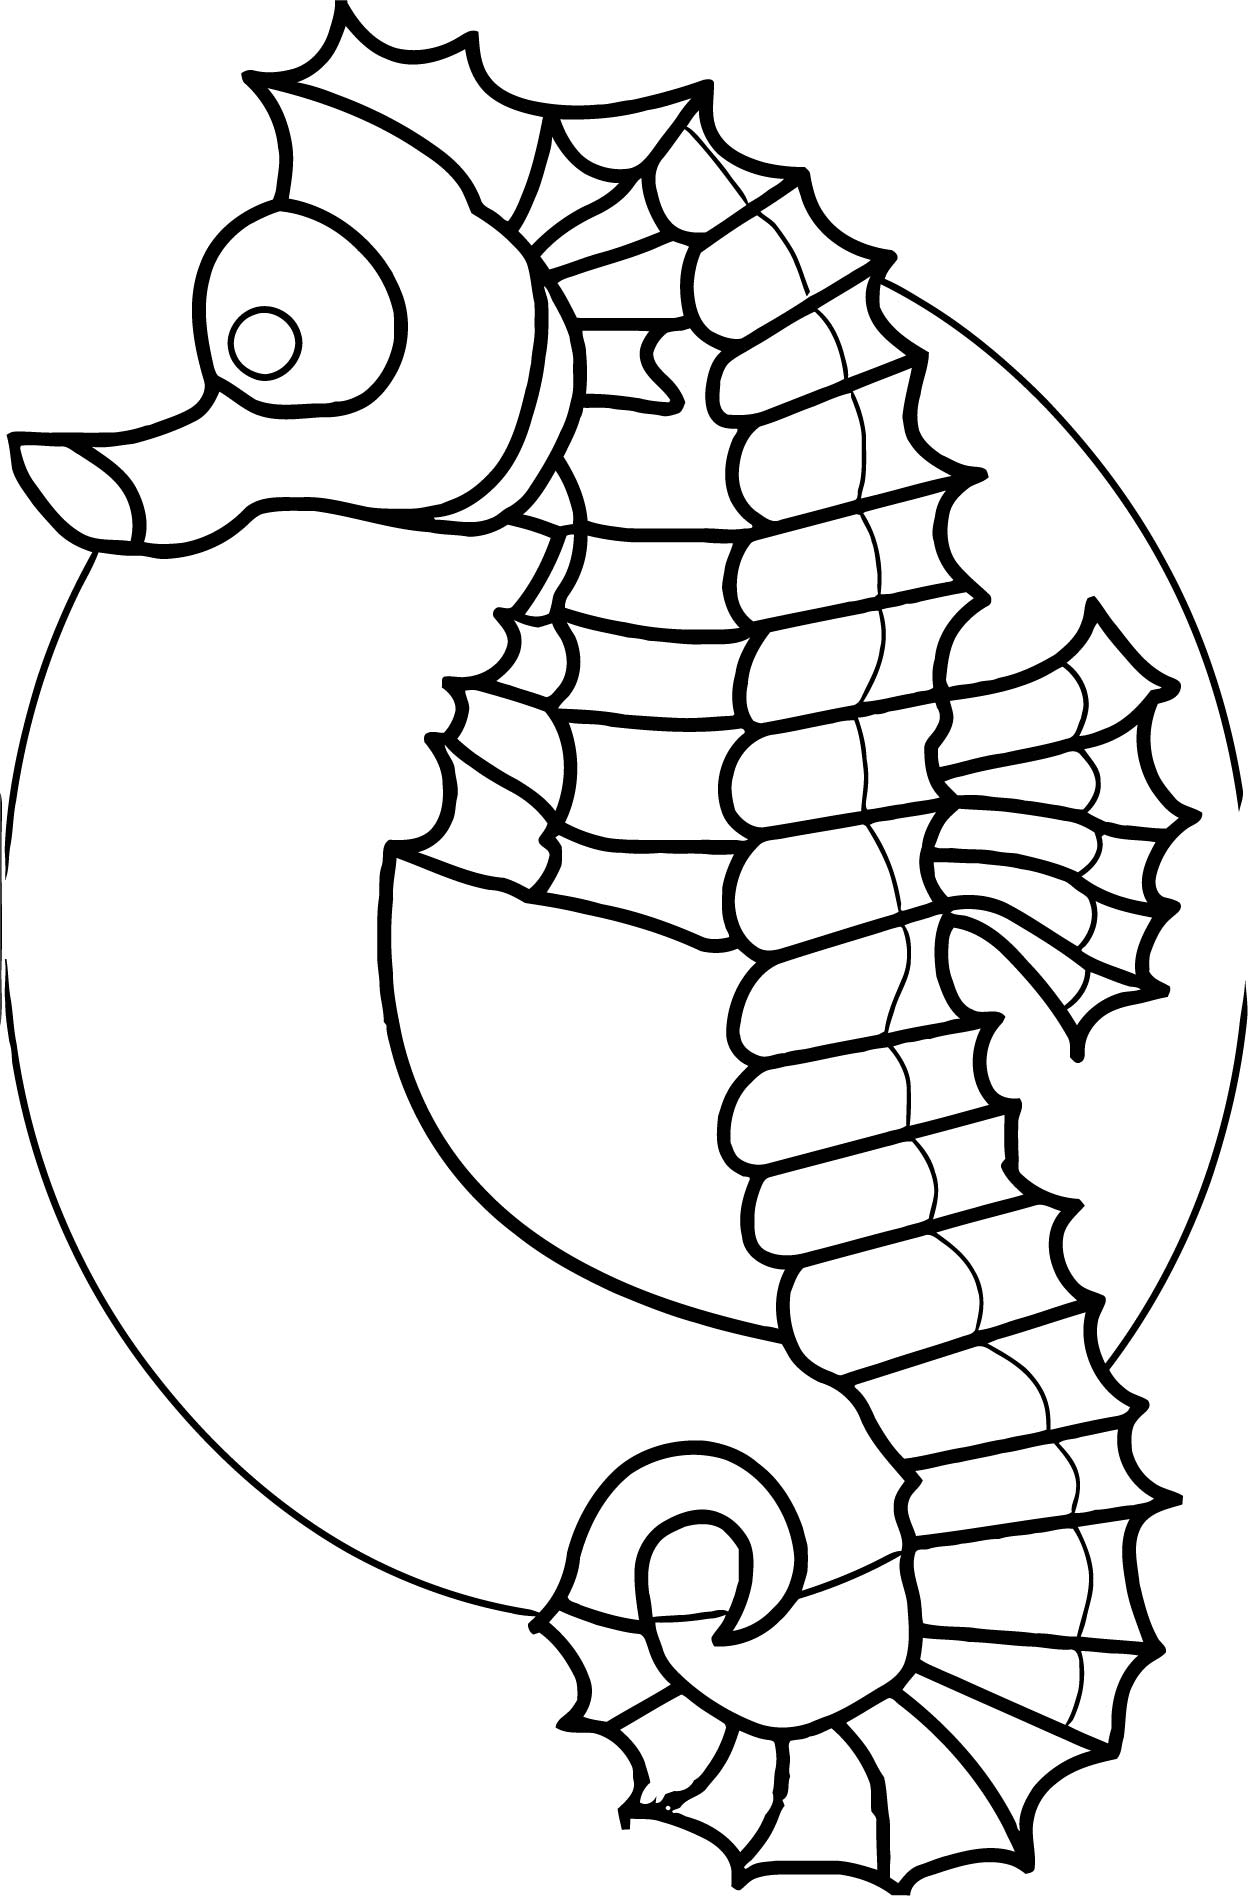 Wecoloringpage.com | Free And Printable Coloring Page